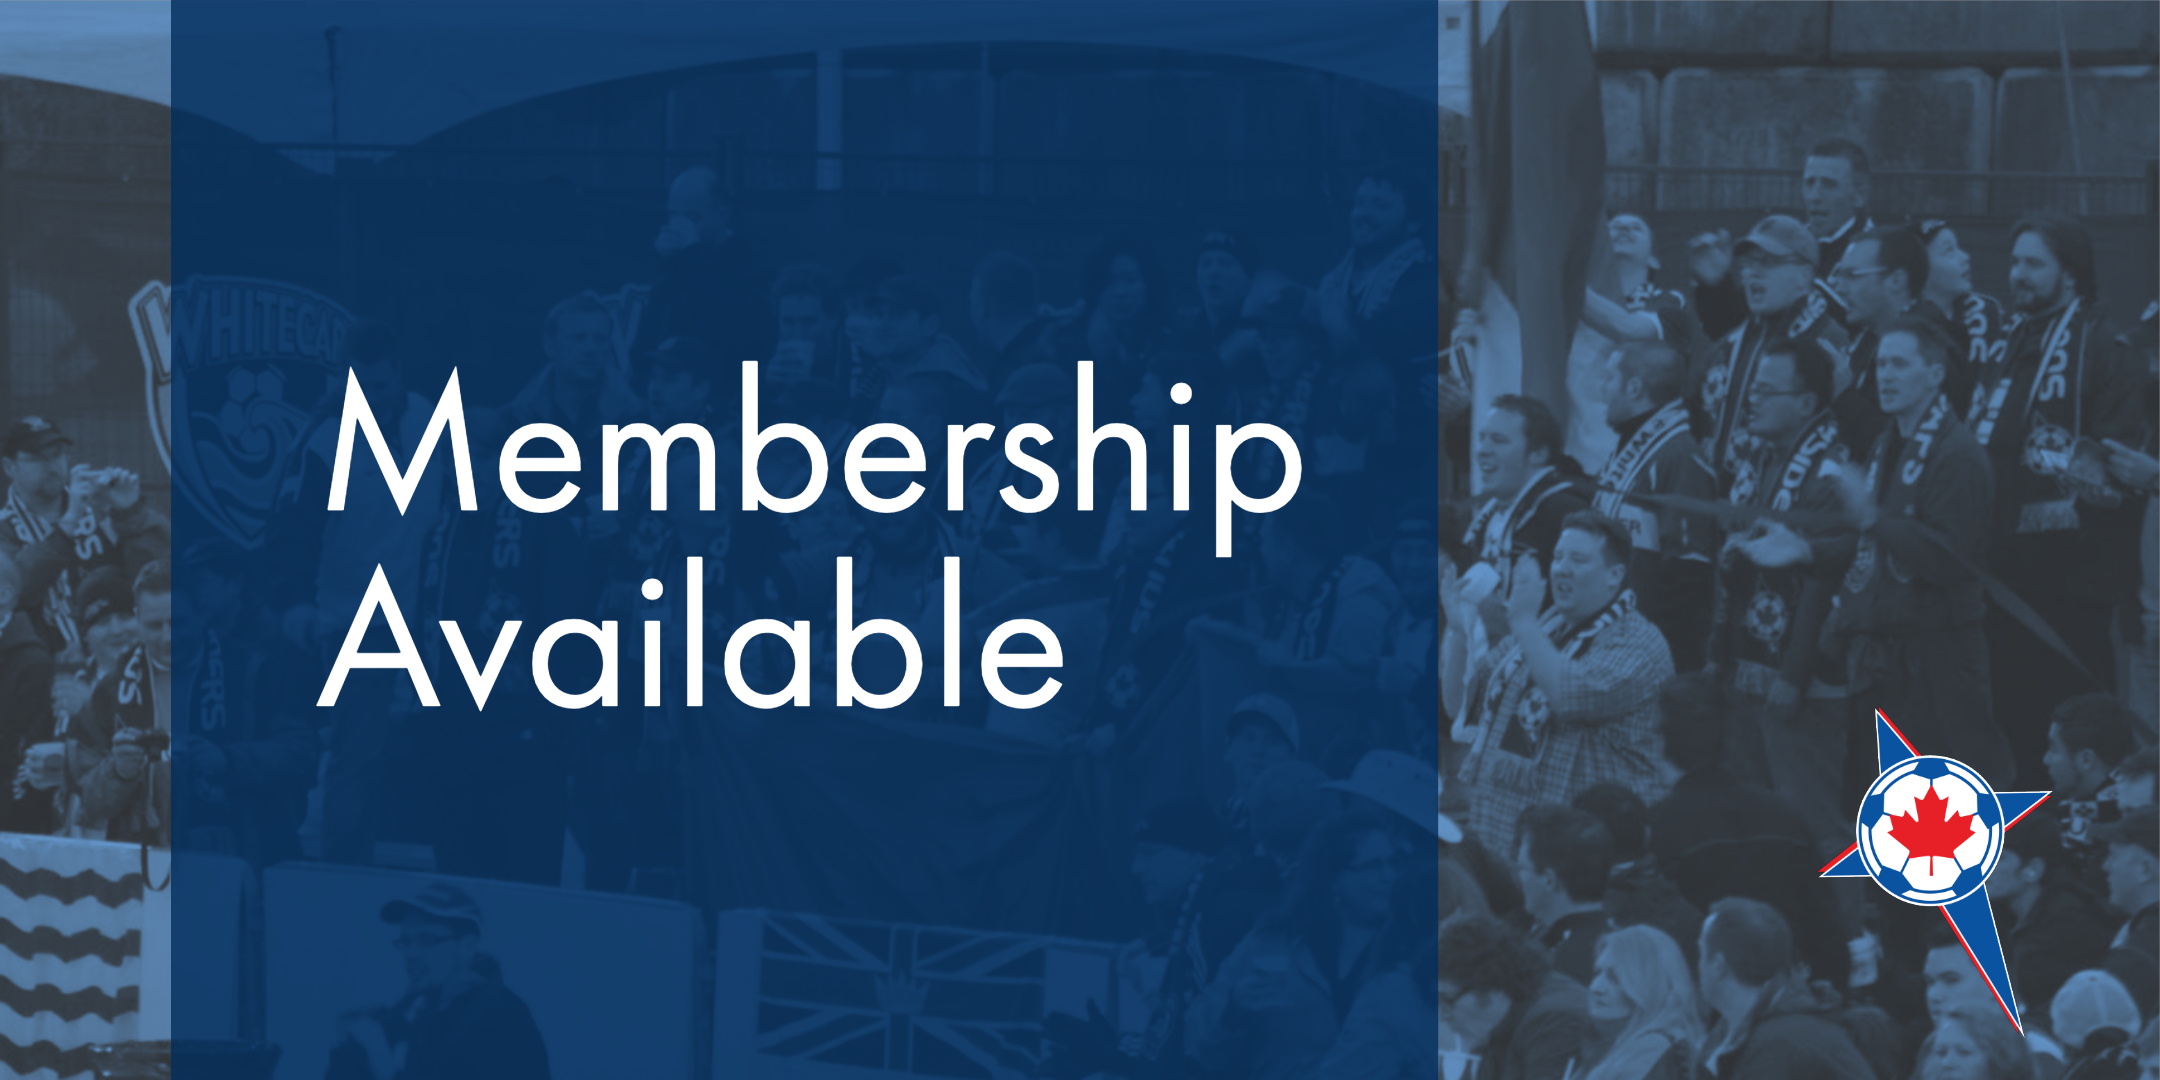 Membership available